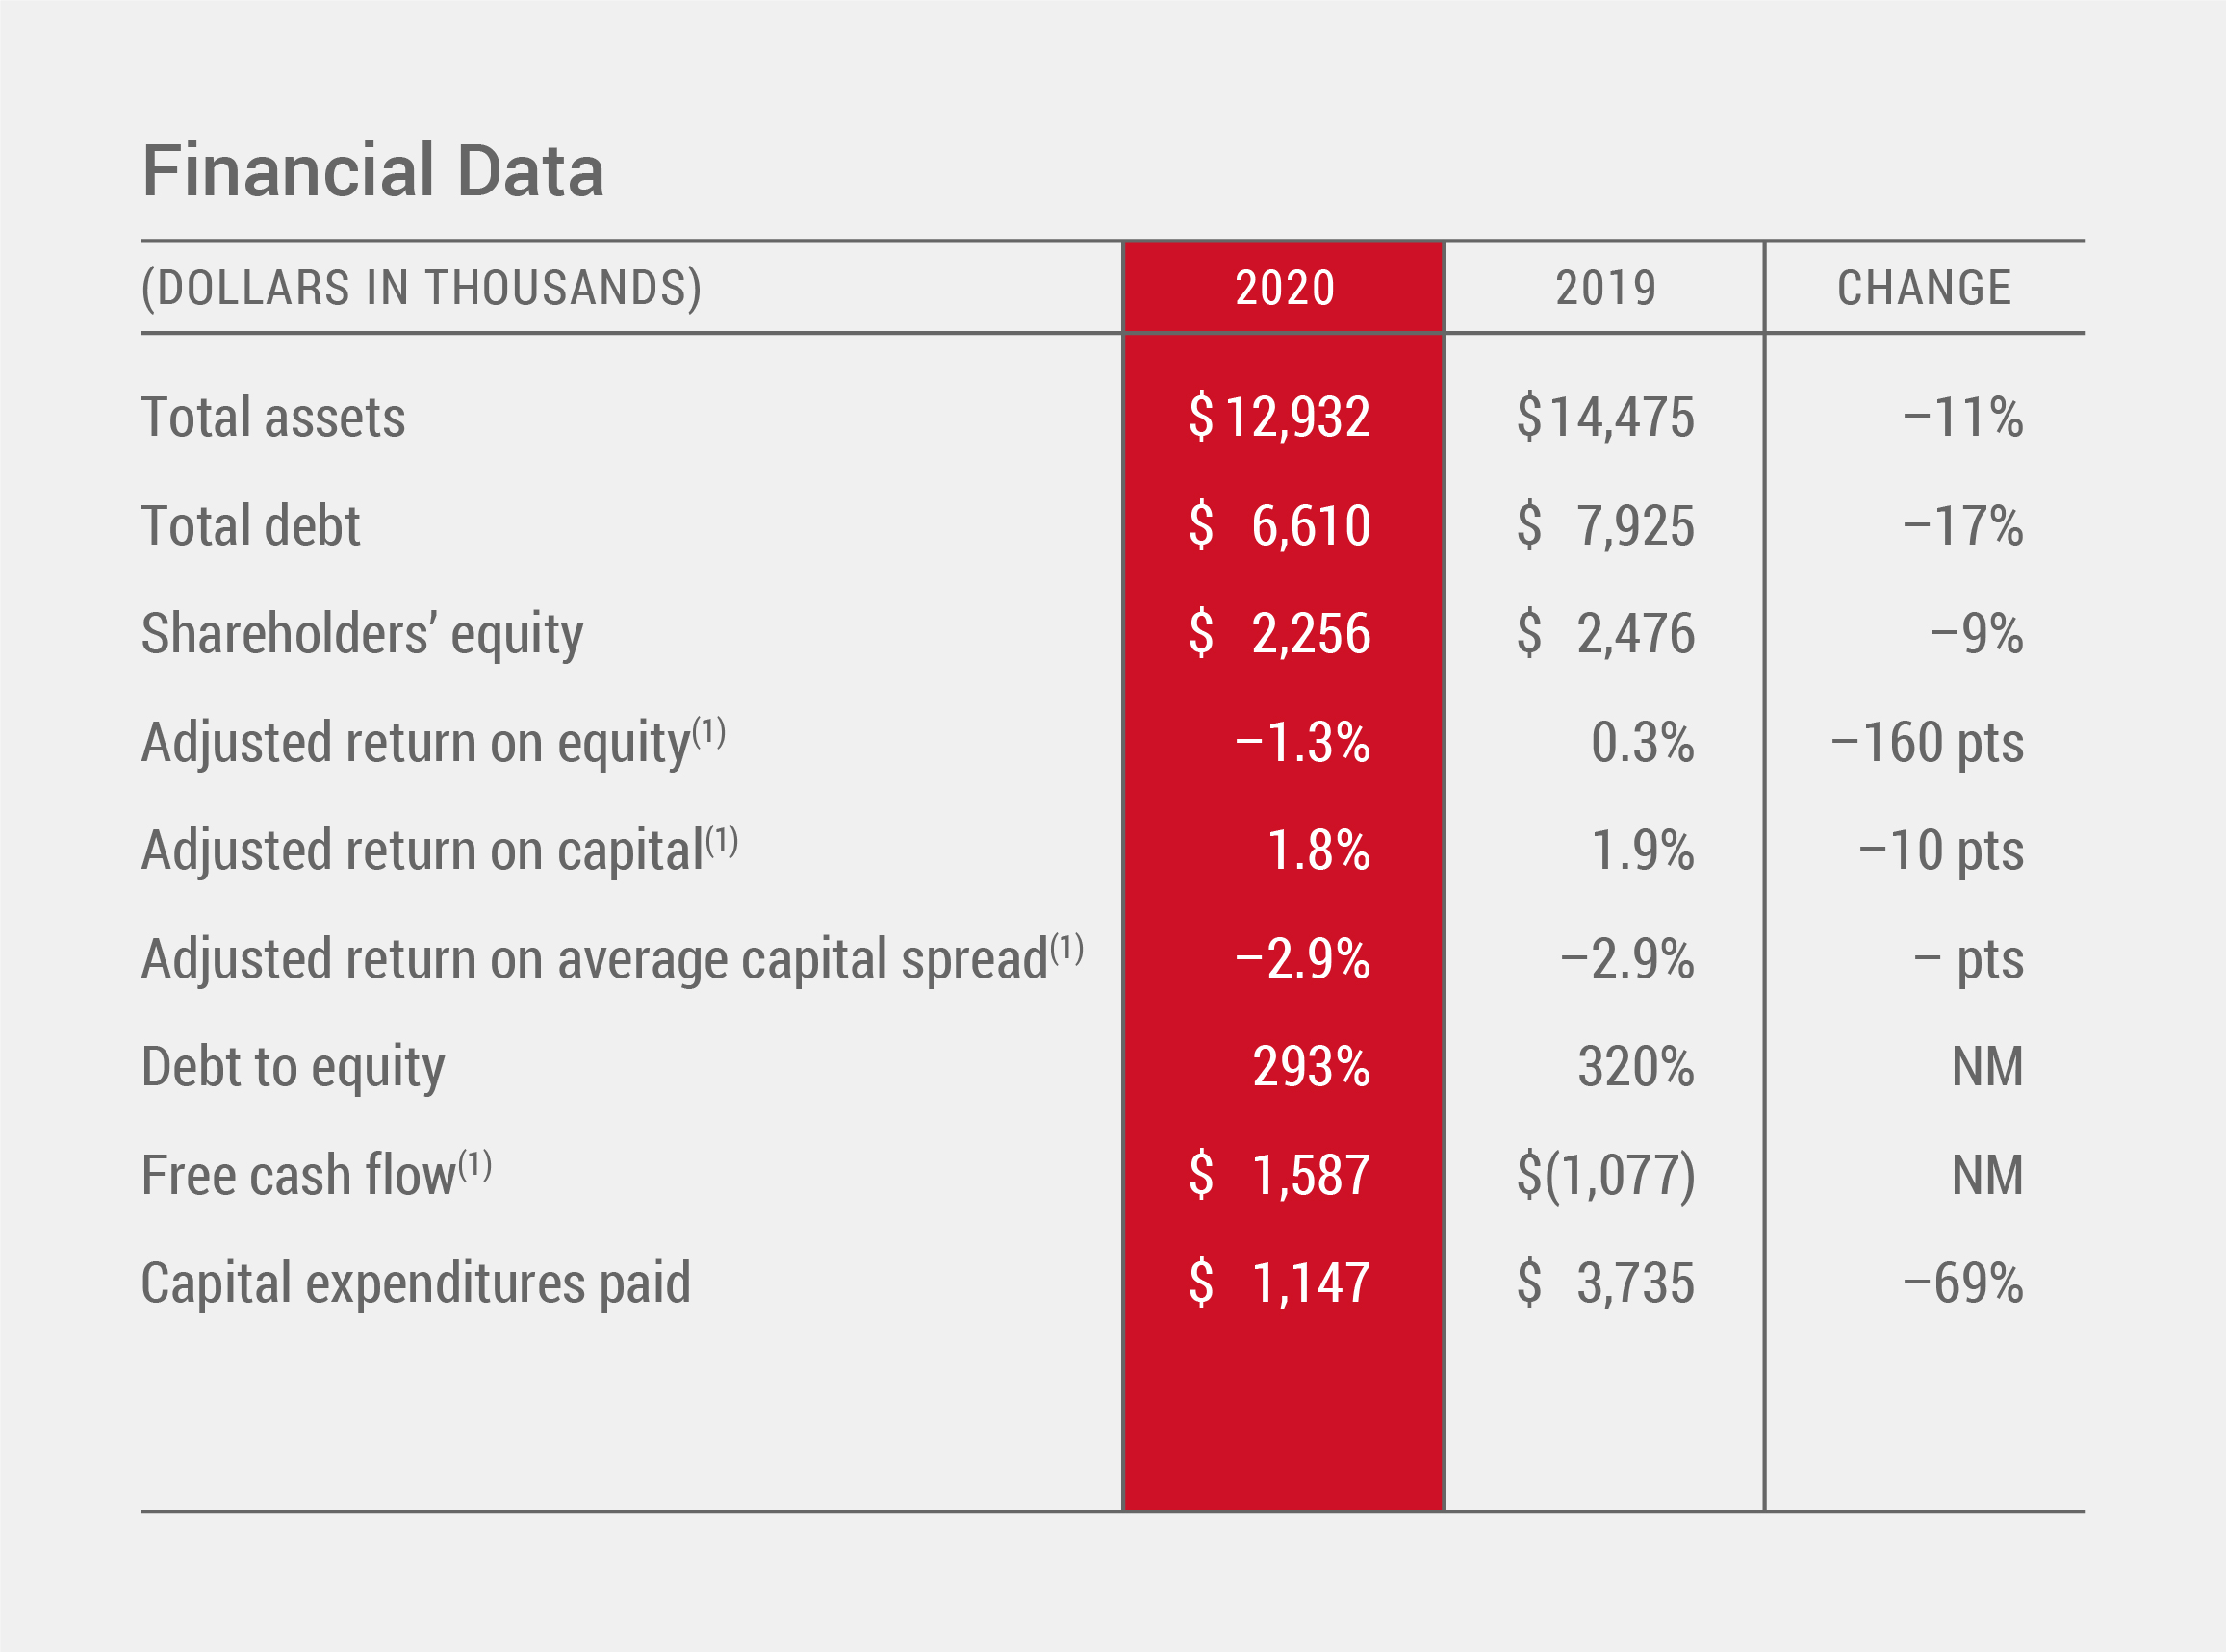 Financial Data Chart